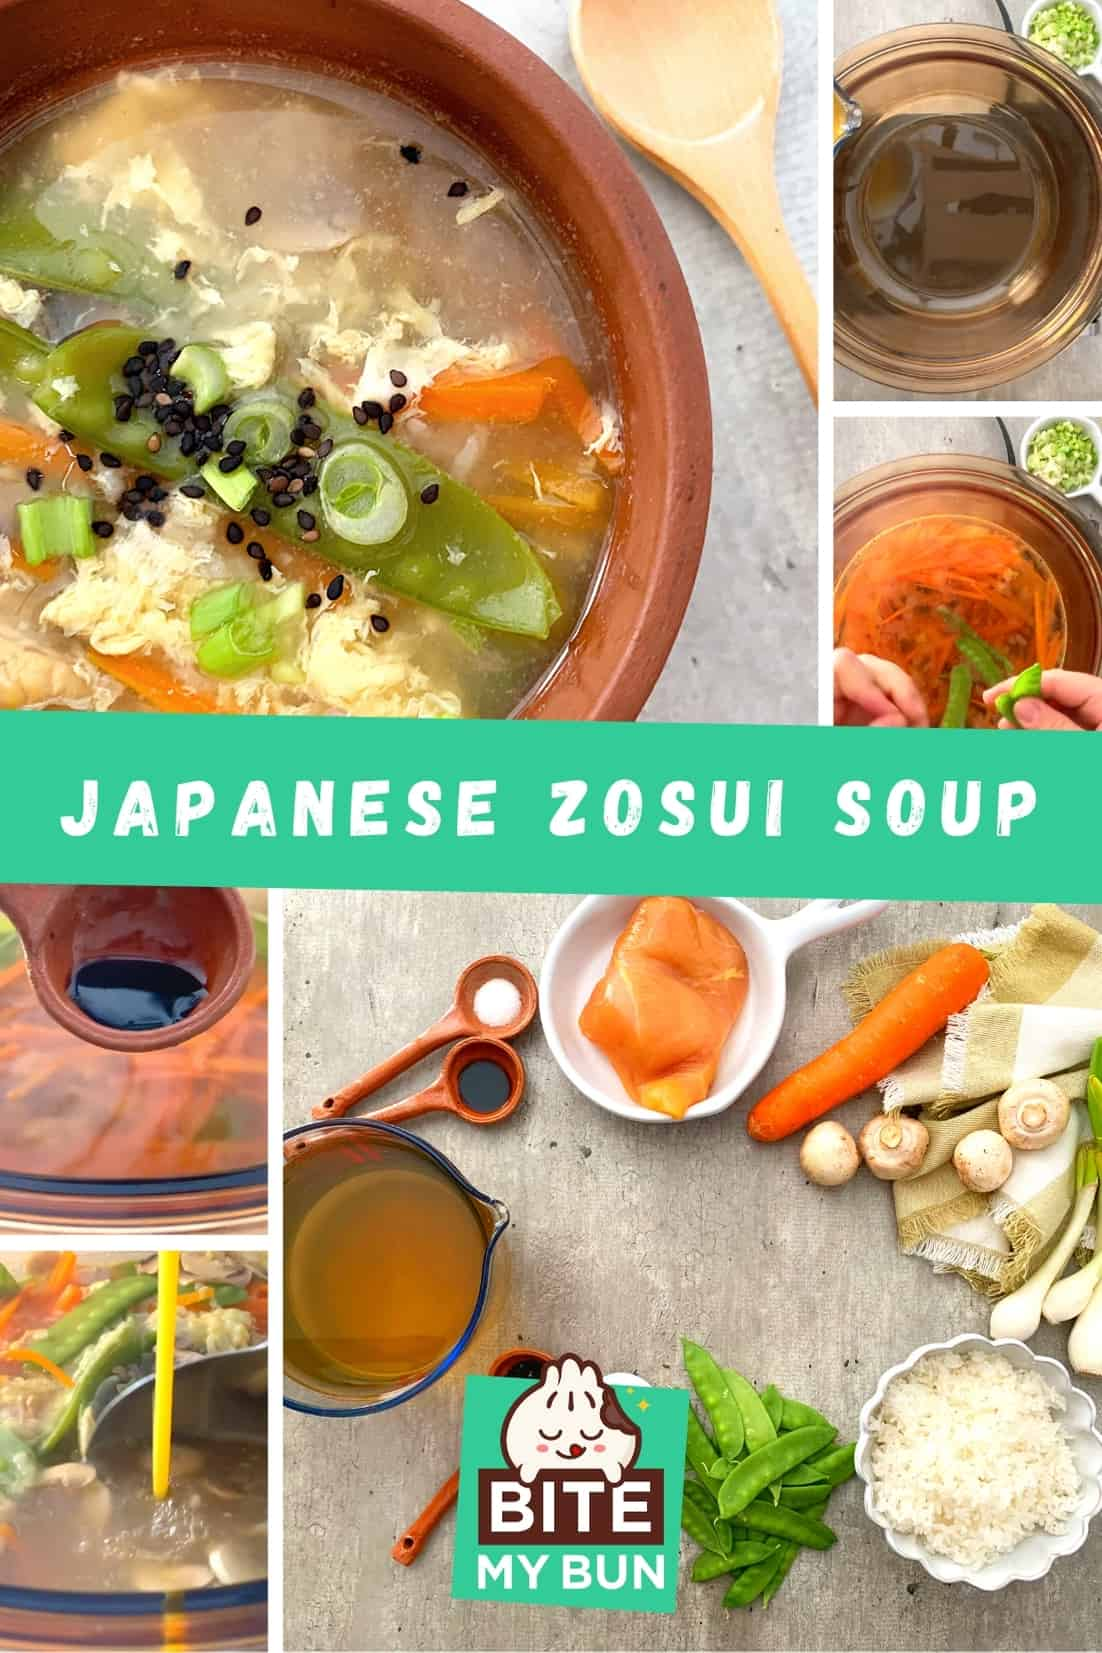 How to make Japanese zosui soup